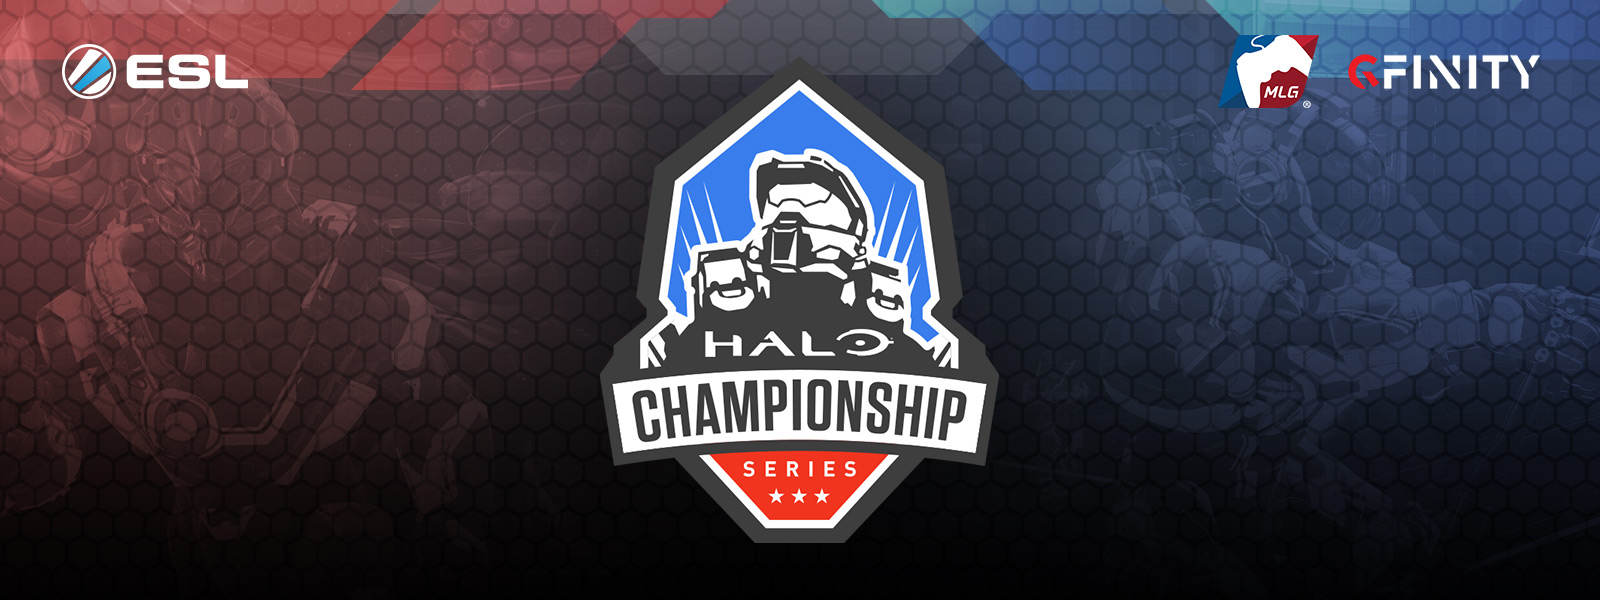 Logótipo do Halo Championship Series